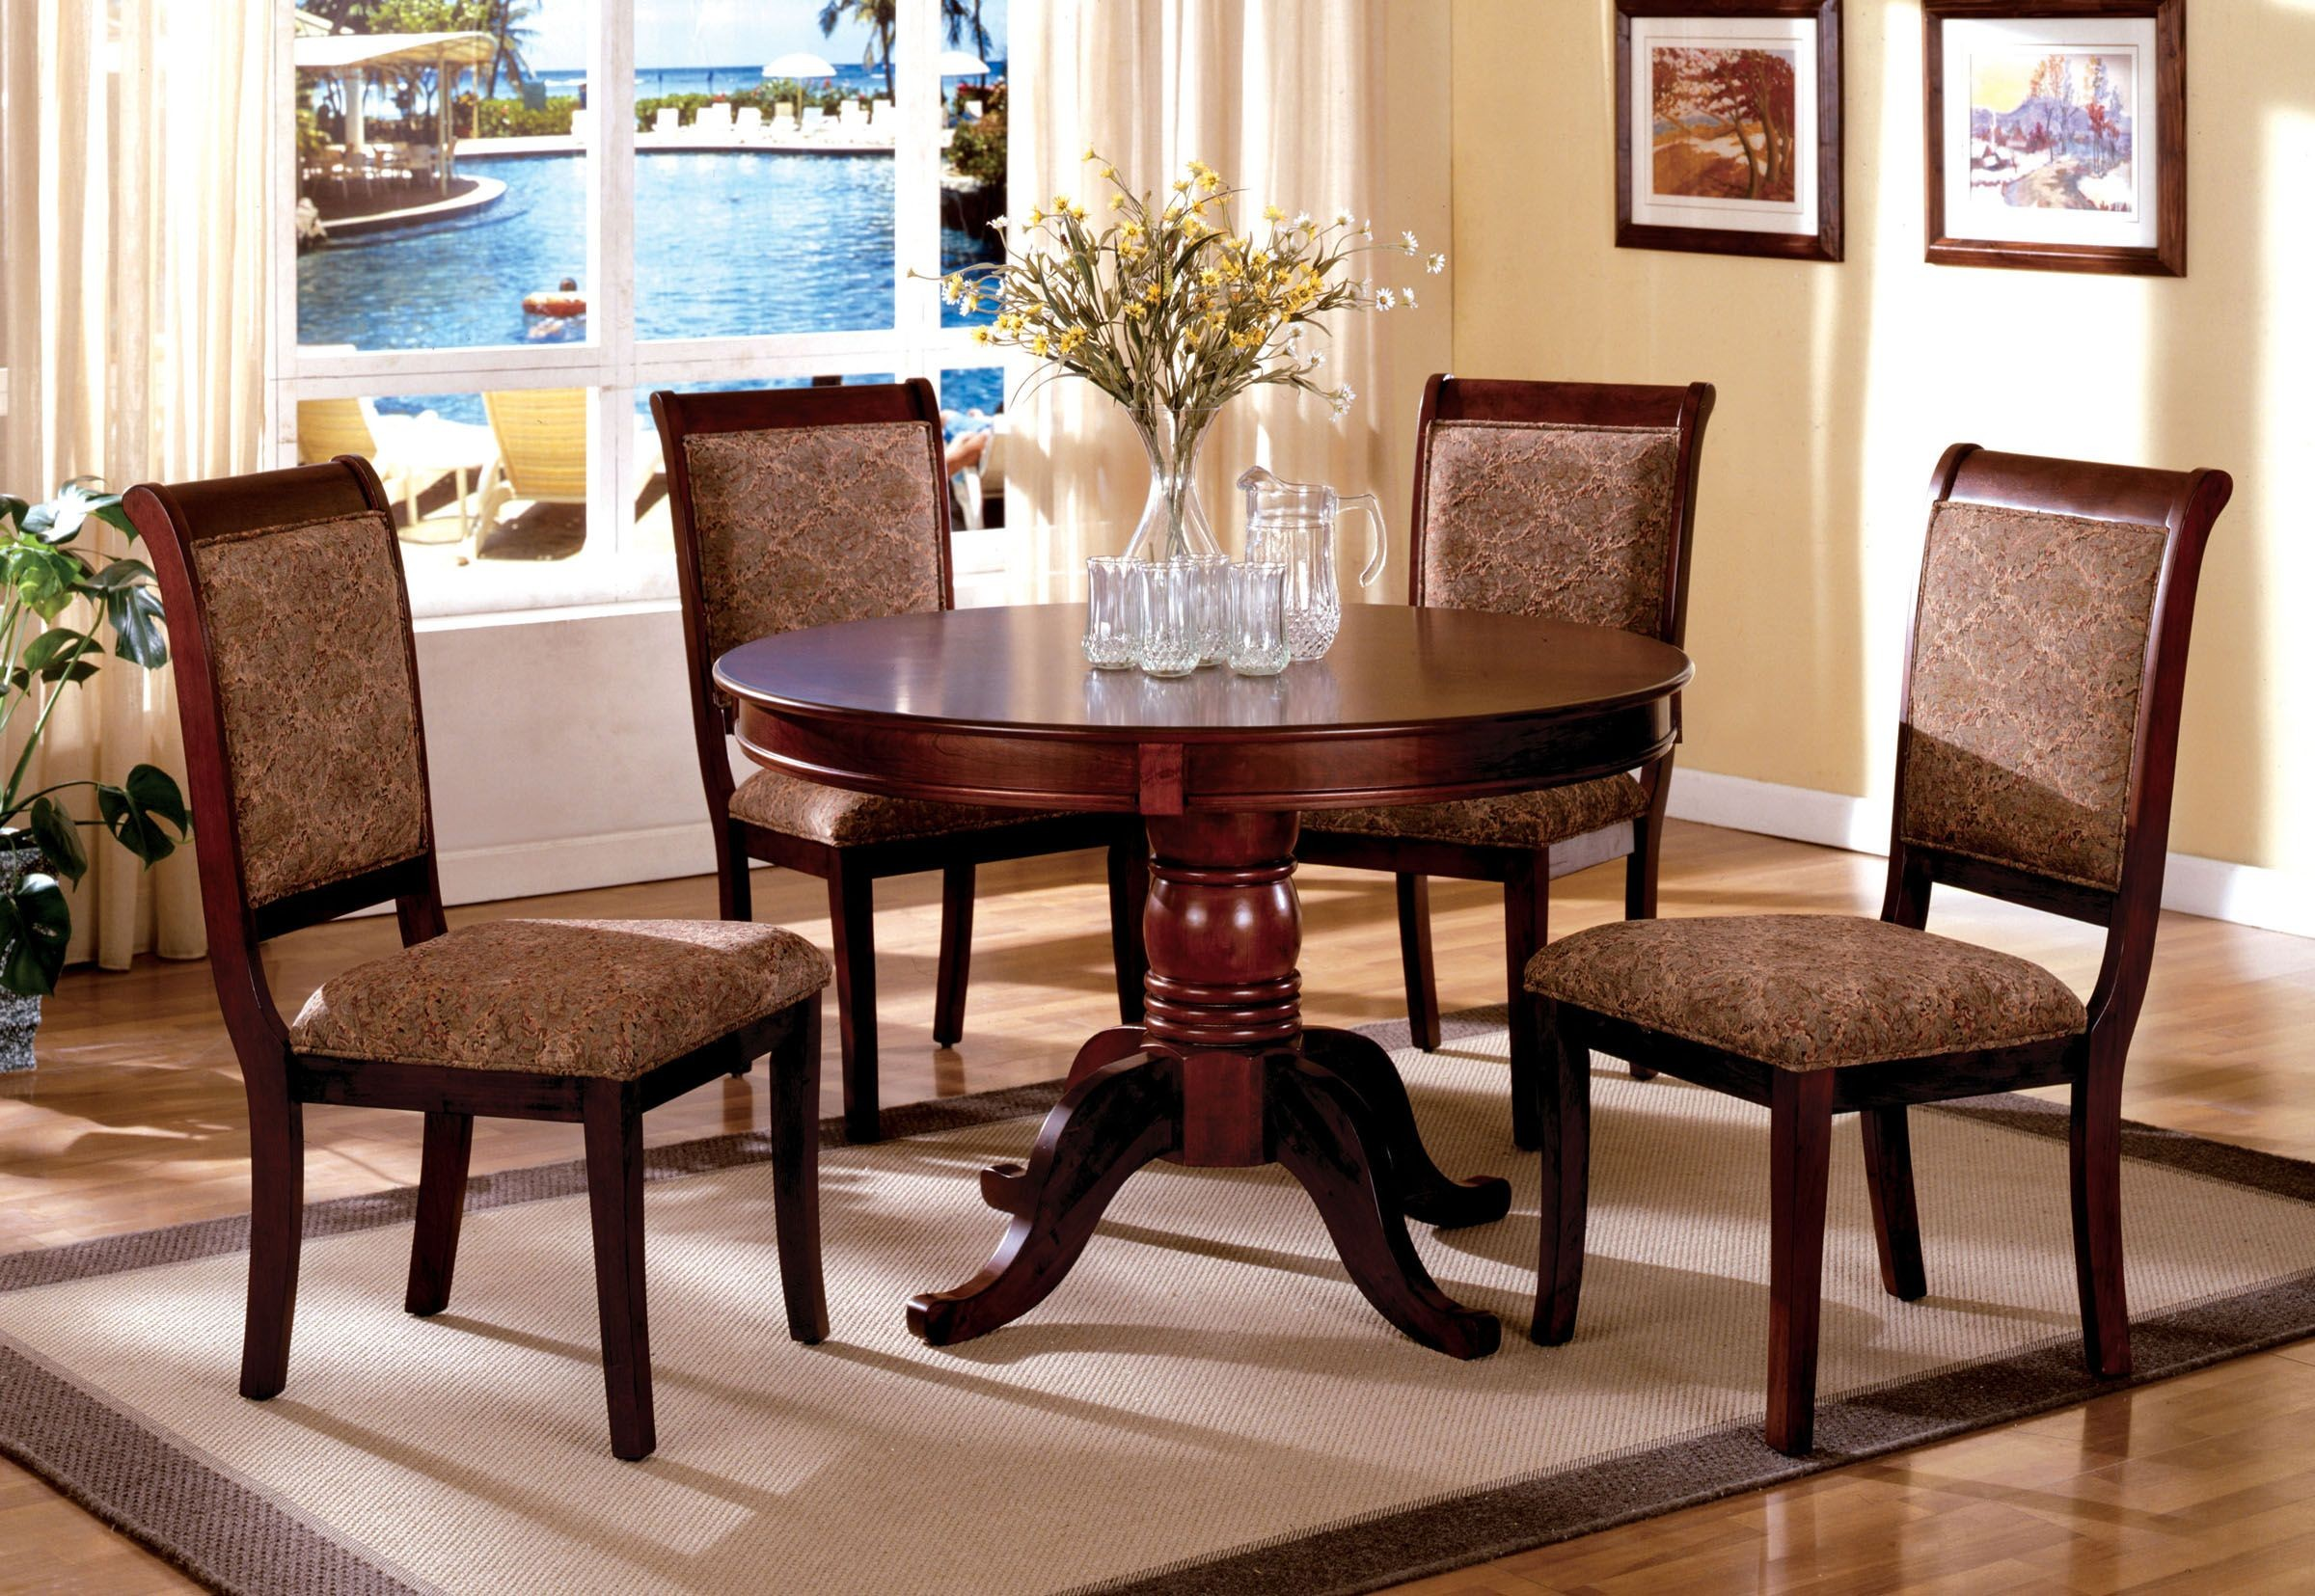 cherry wood chairs banquet chair covers in hyderabad st nicholas ii antique round pedestal dining room